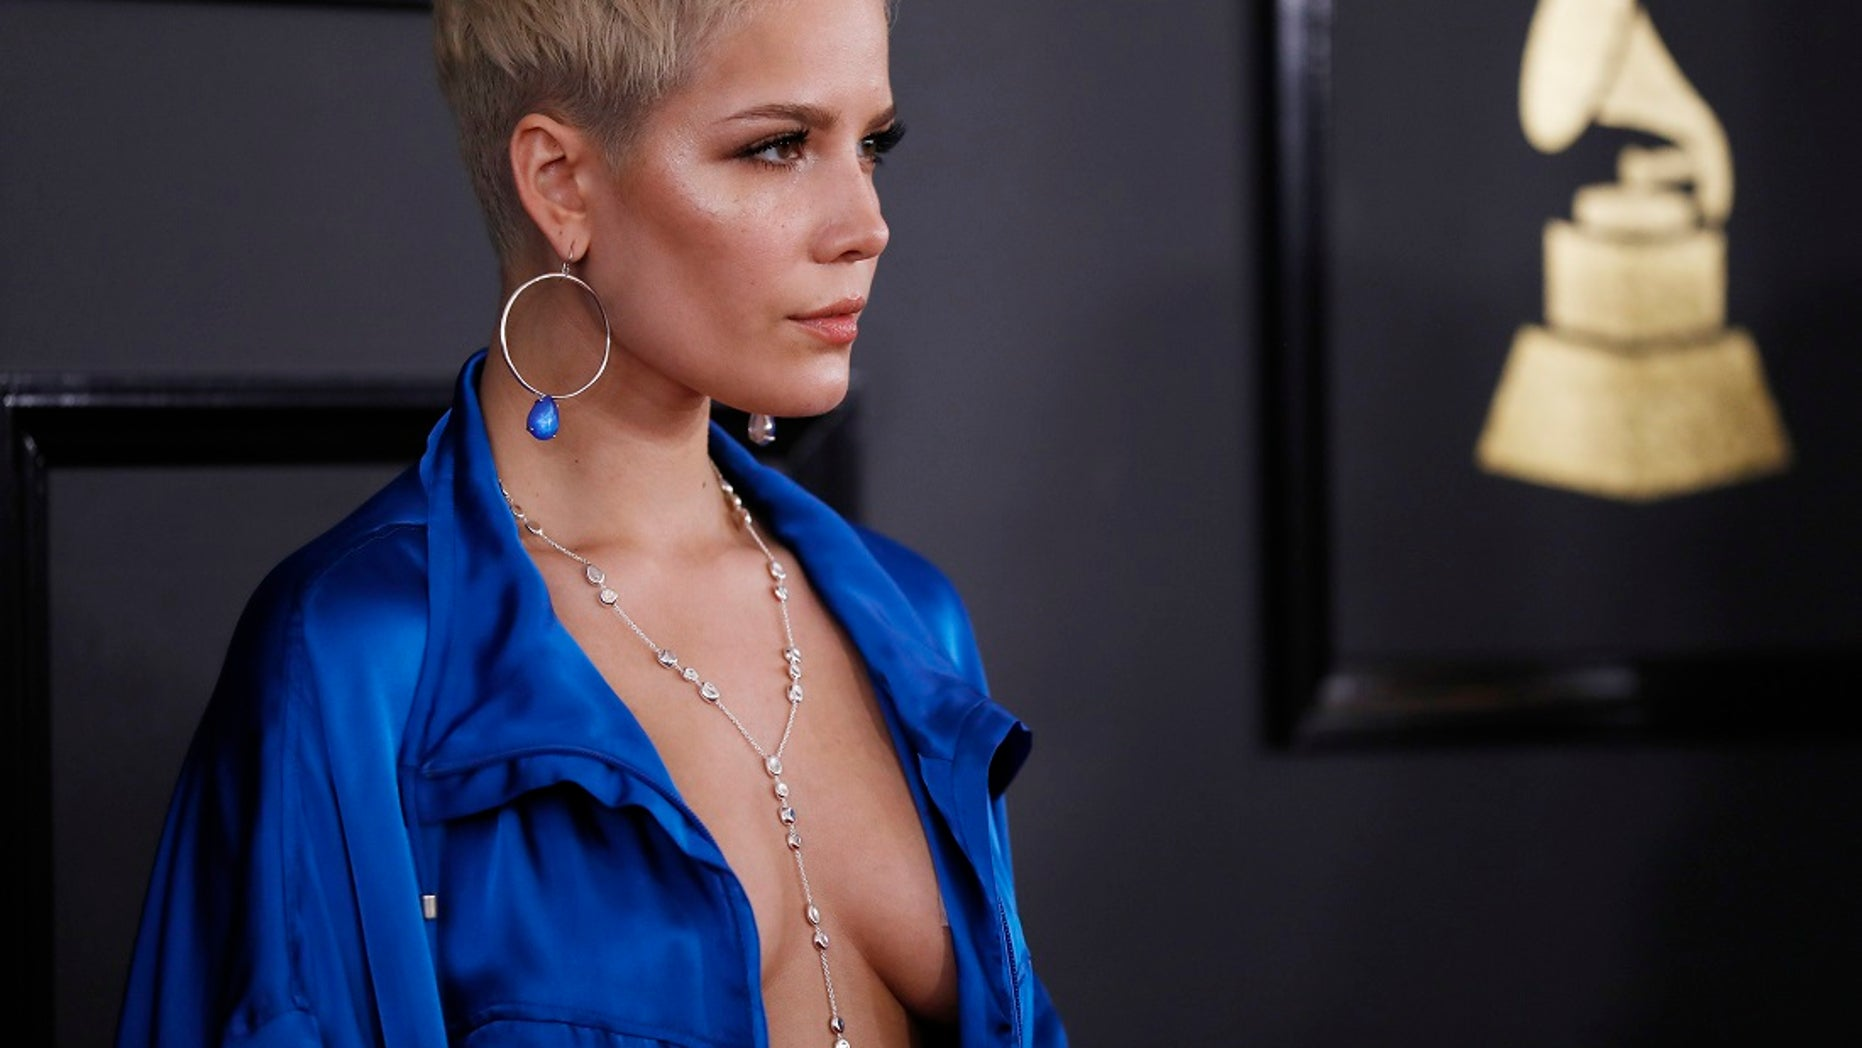 Singer Halsey arrives at the 59th Annual Grammy Awards in Los Angeles.